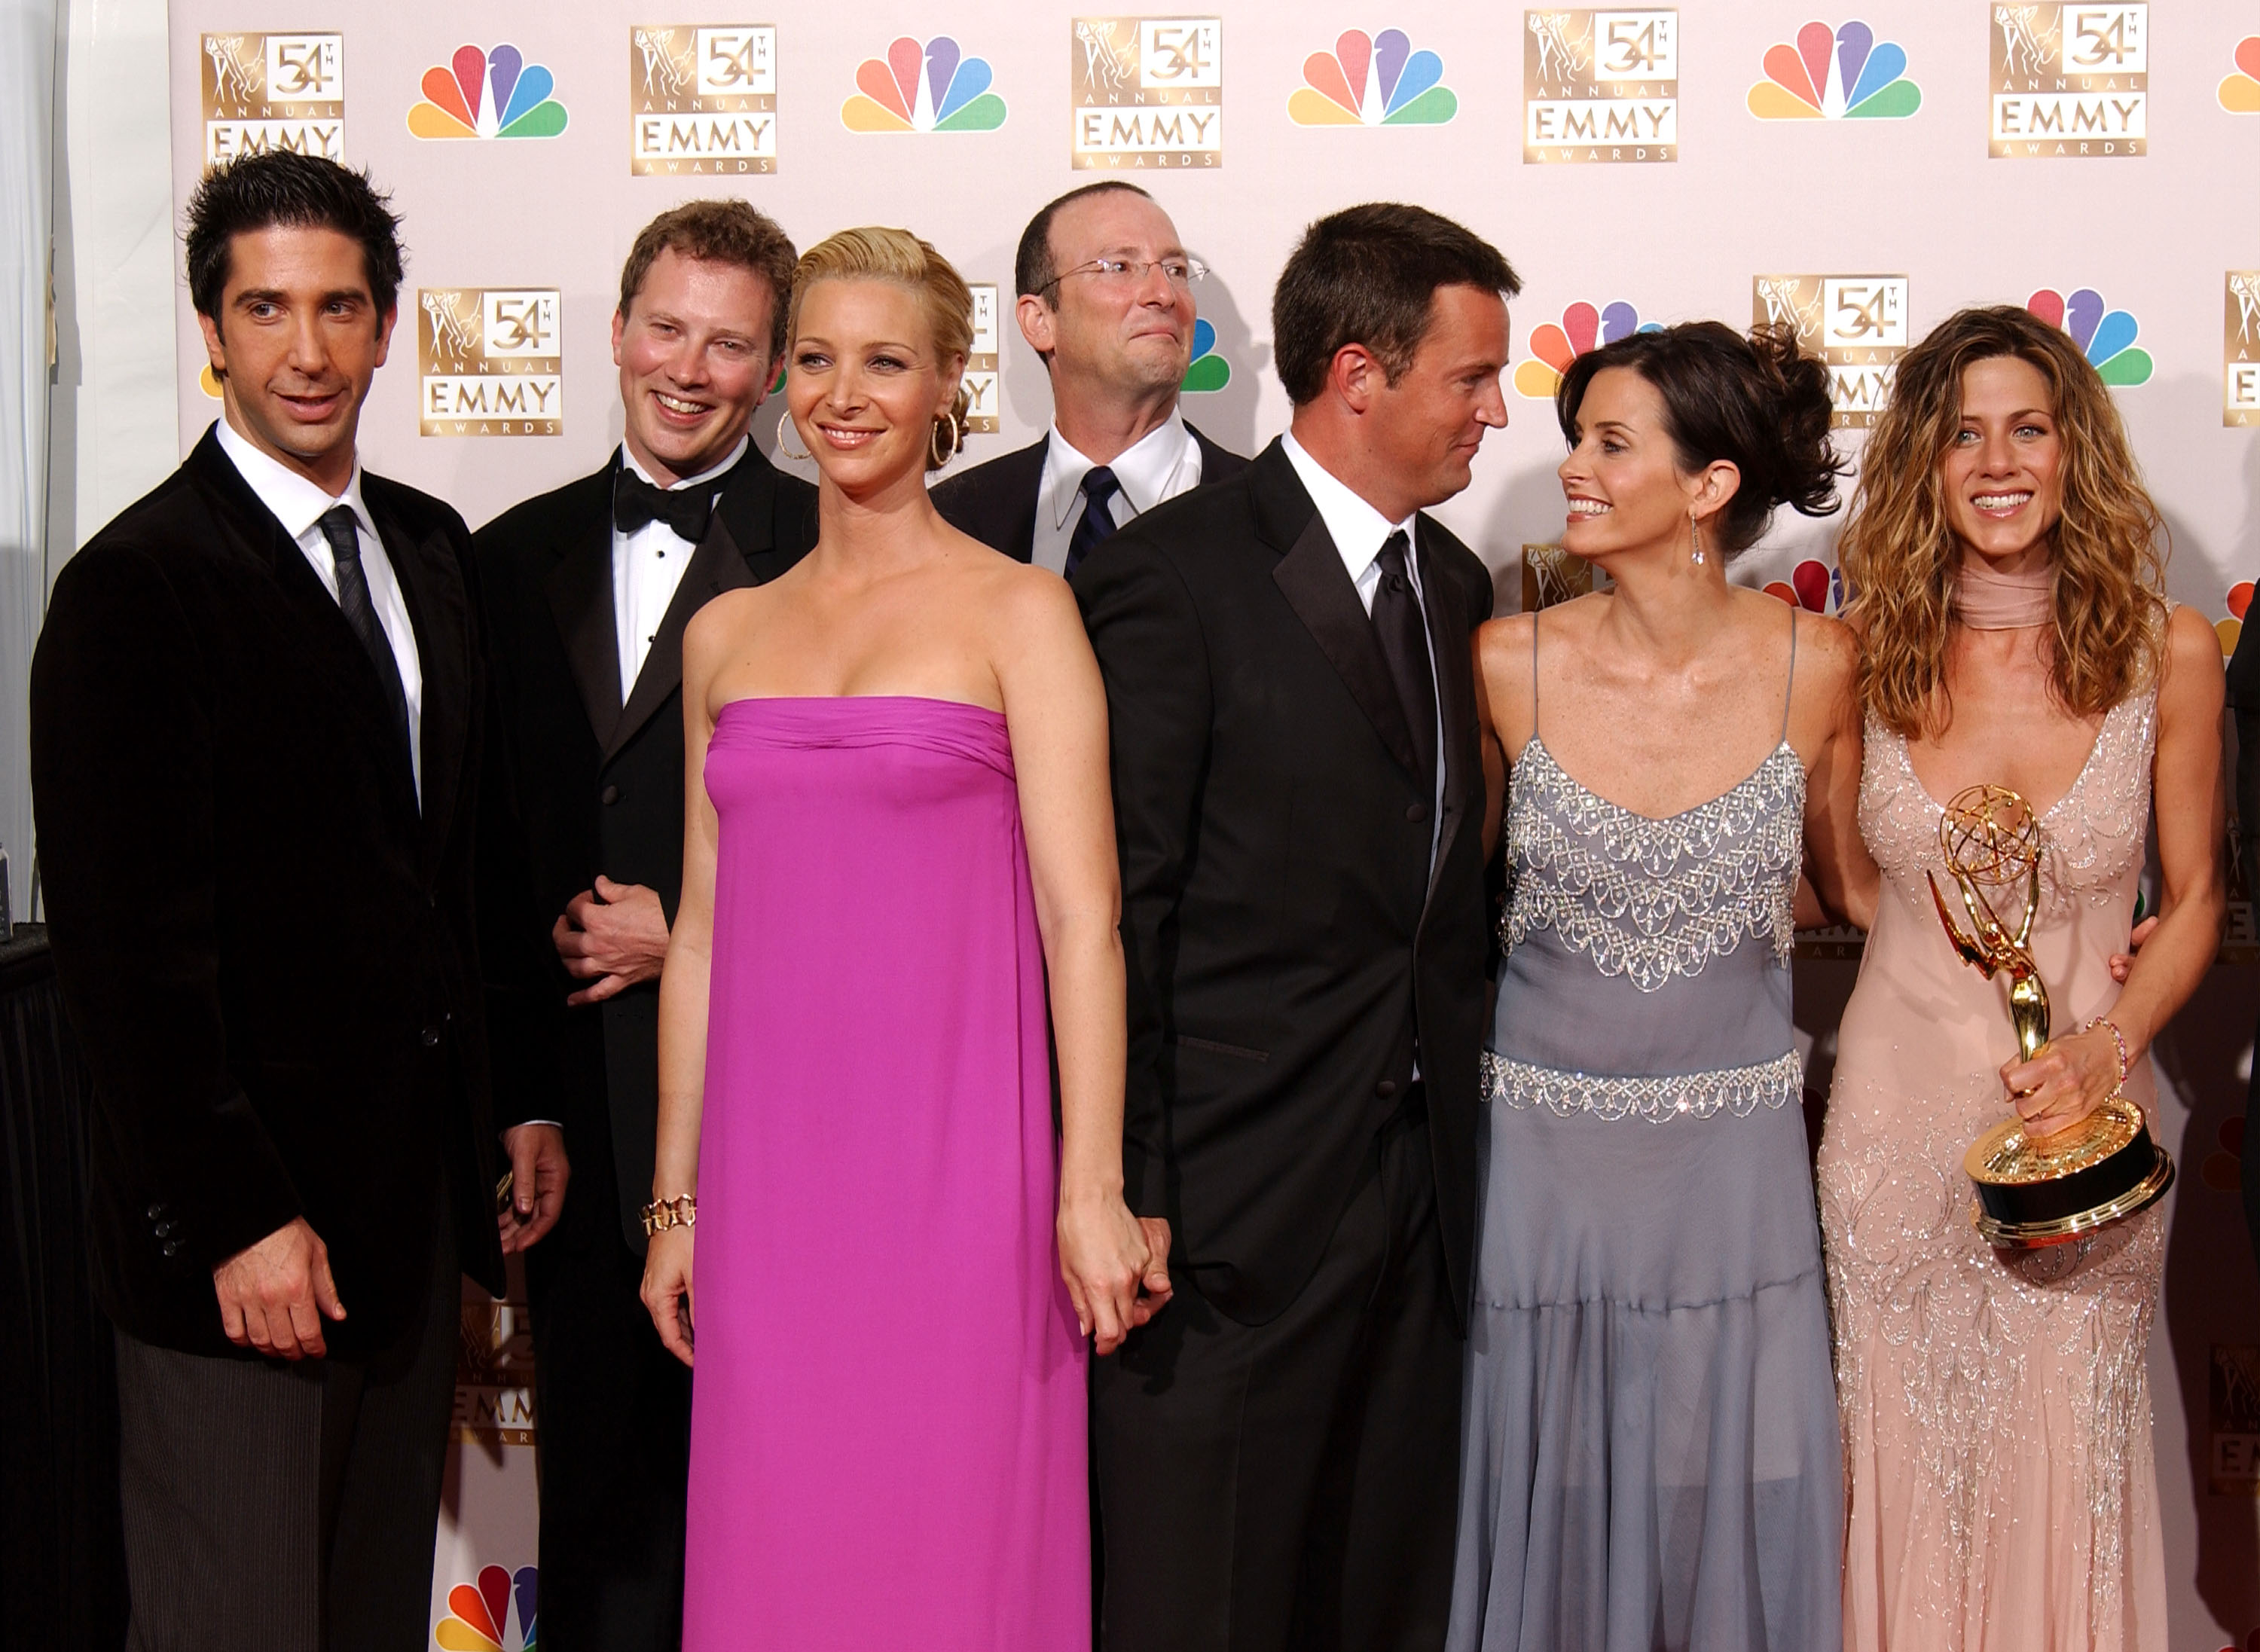 Friends cast at 54th Annual Primetime Emmy Awards Backstage.